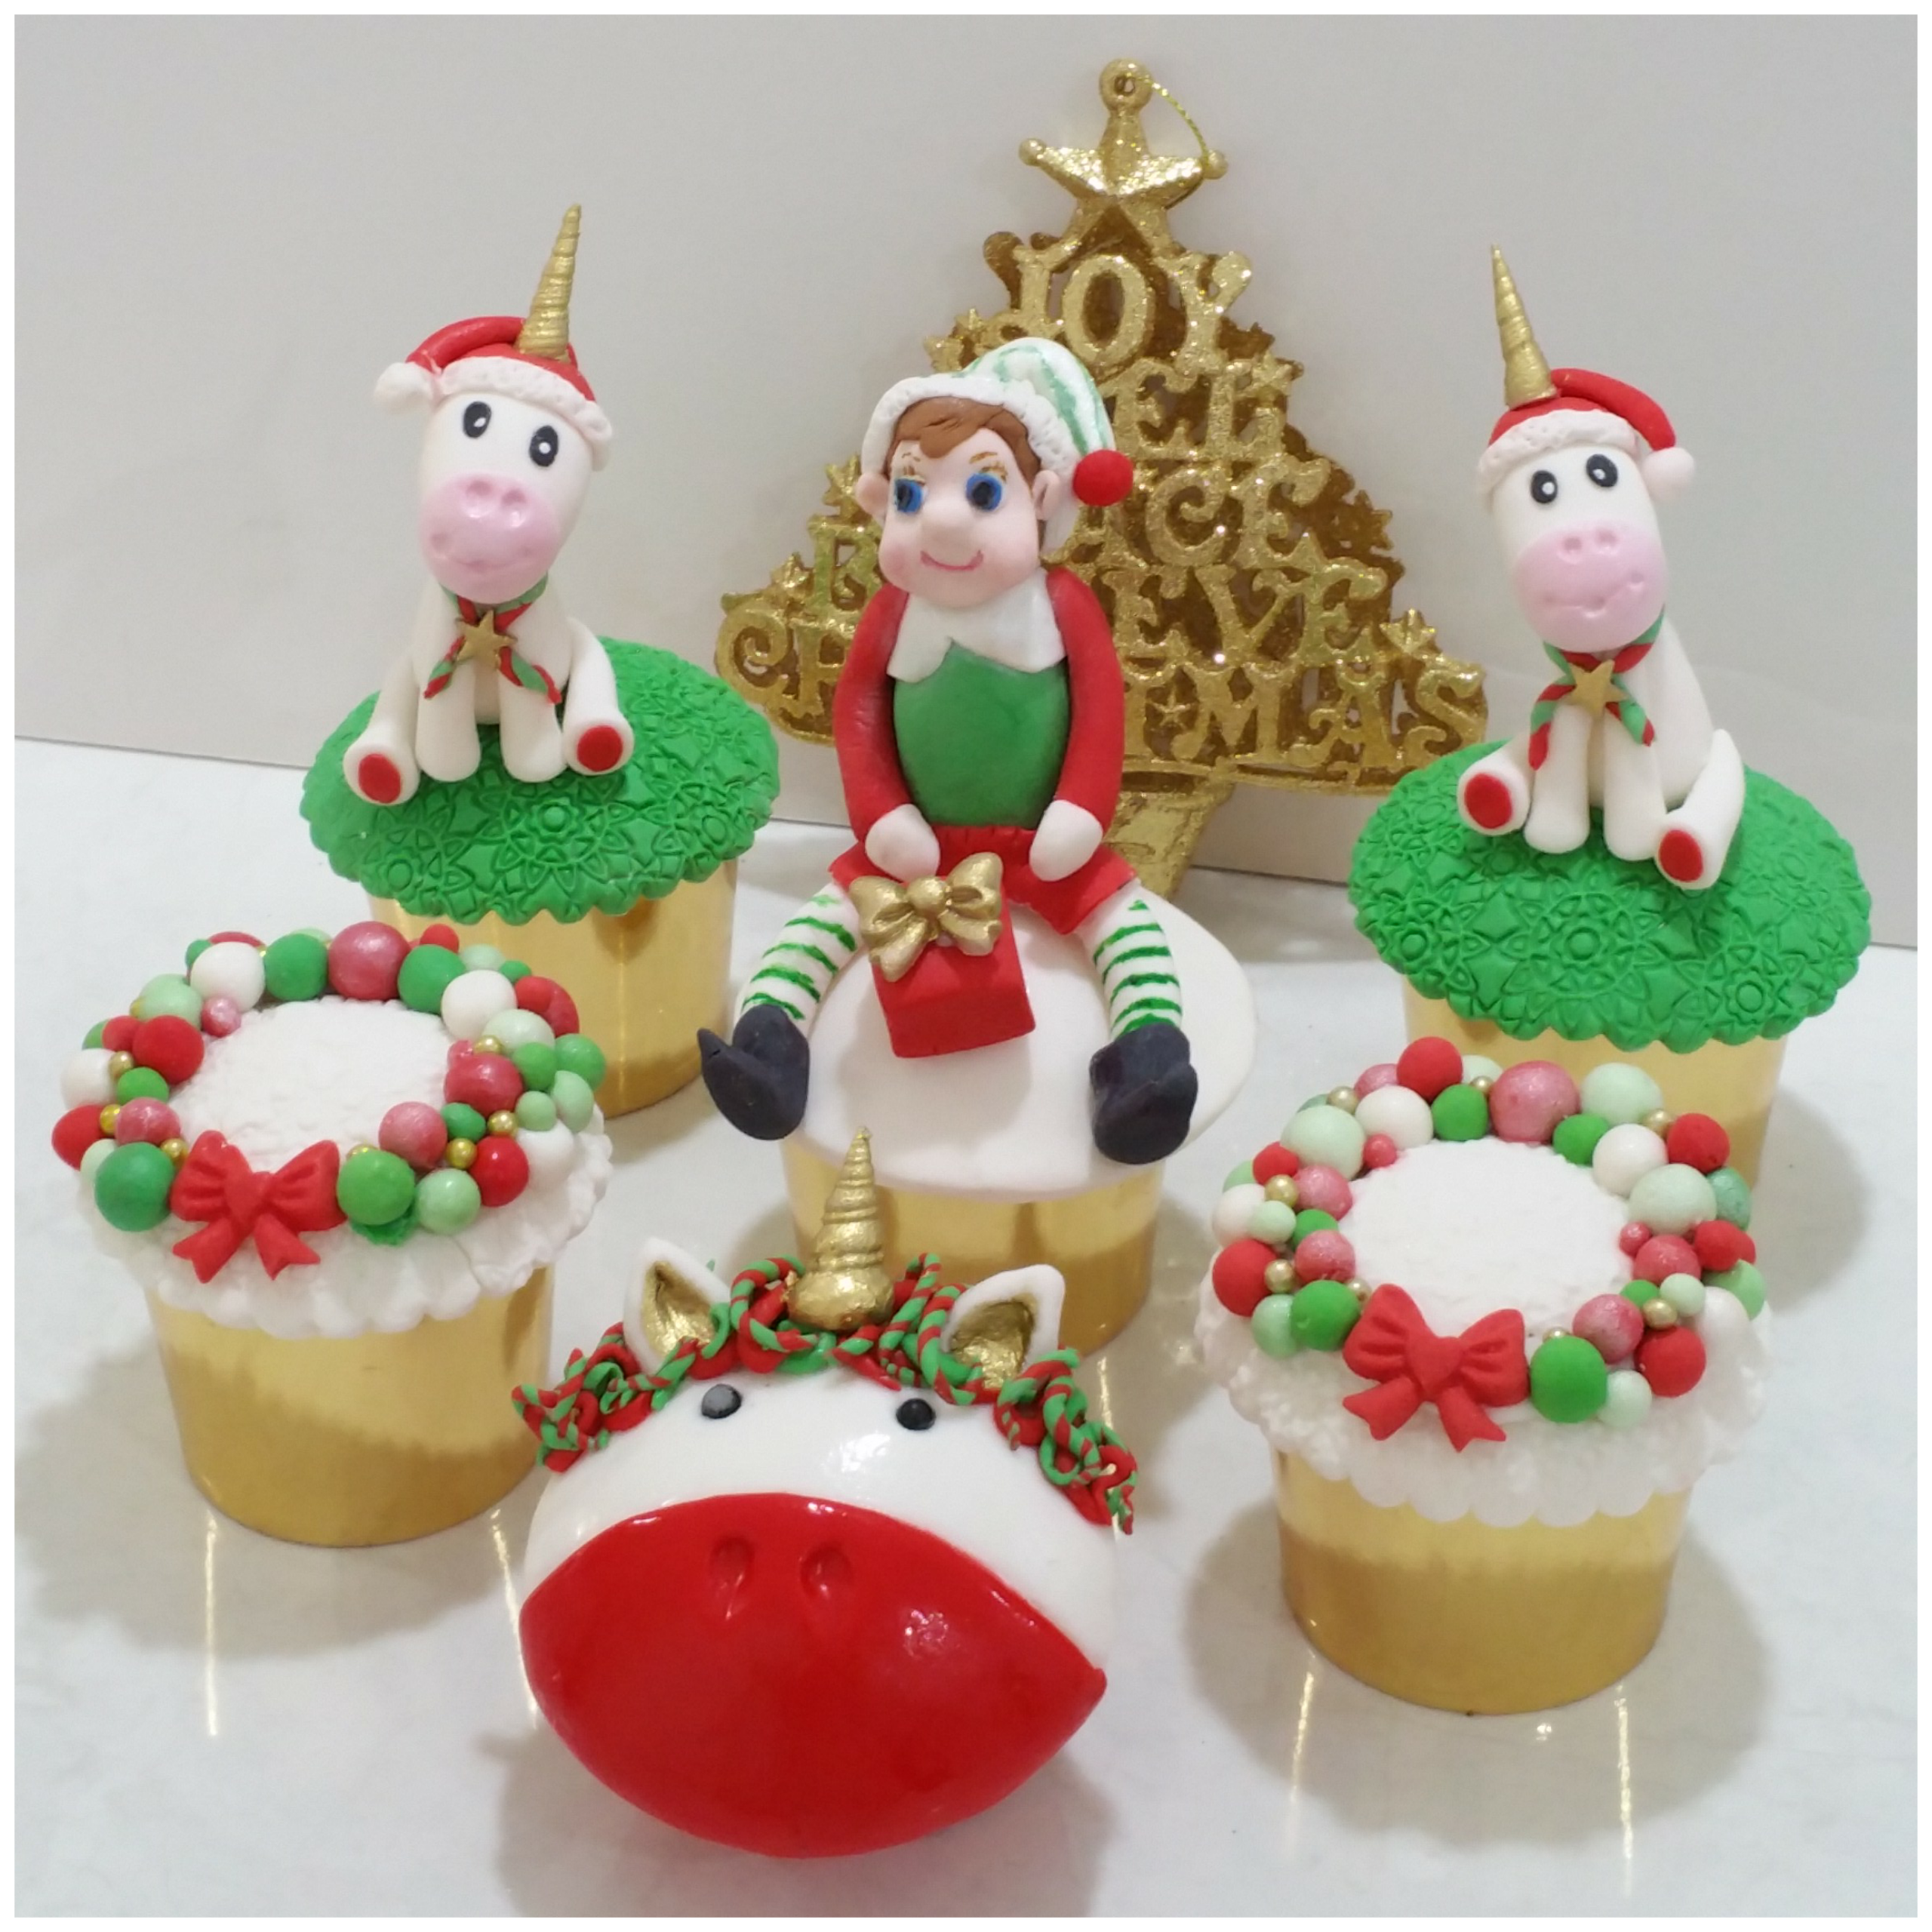 Christmas Unicorn and Elf Cucpakes